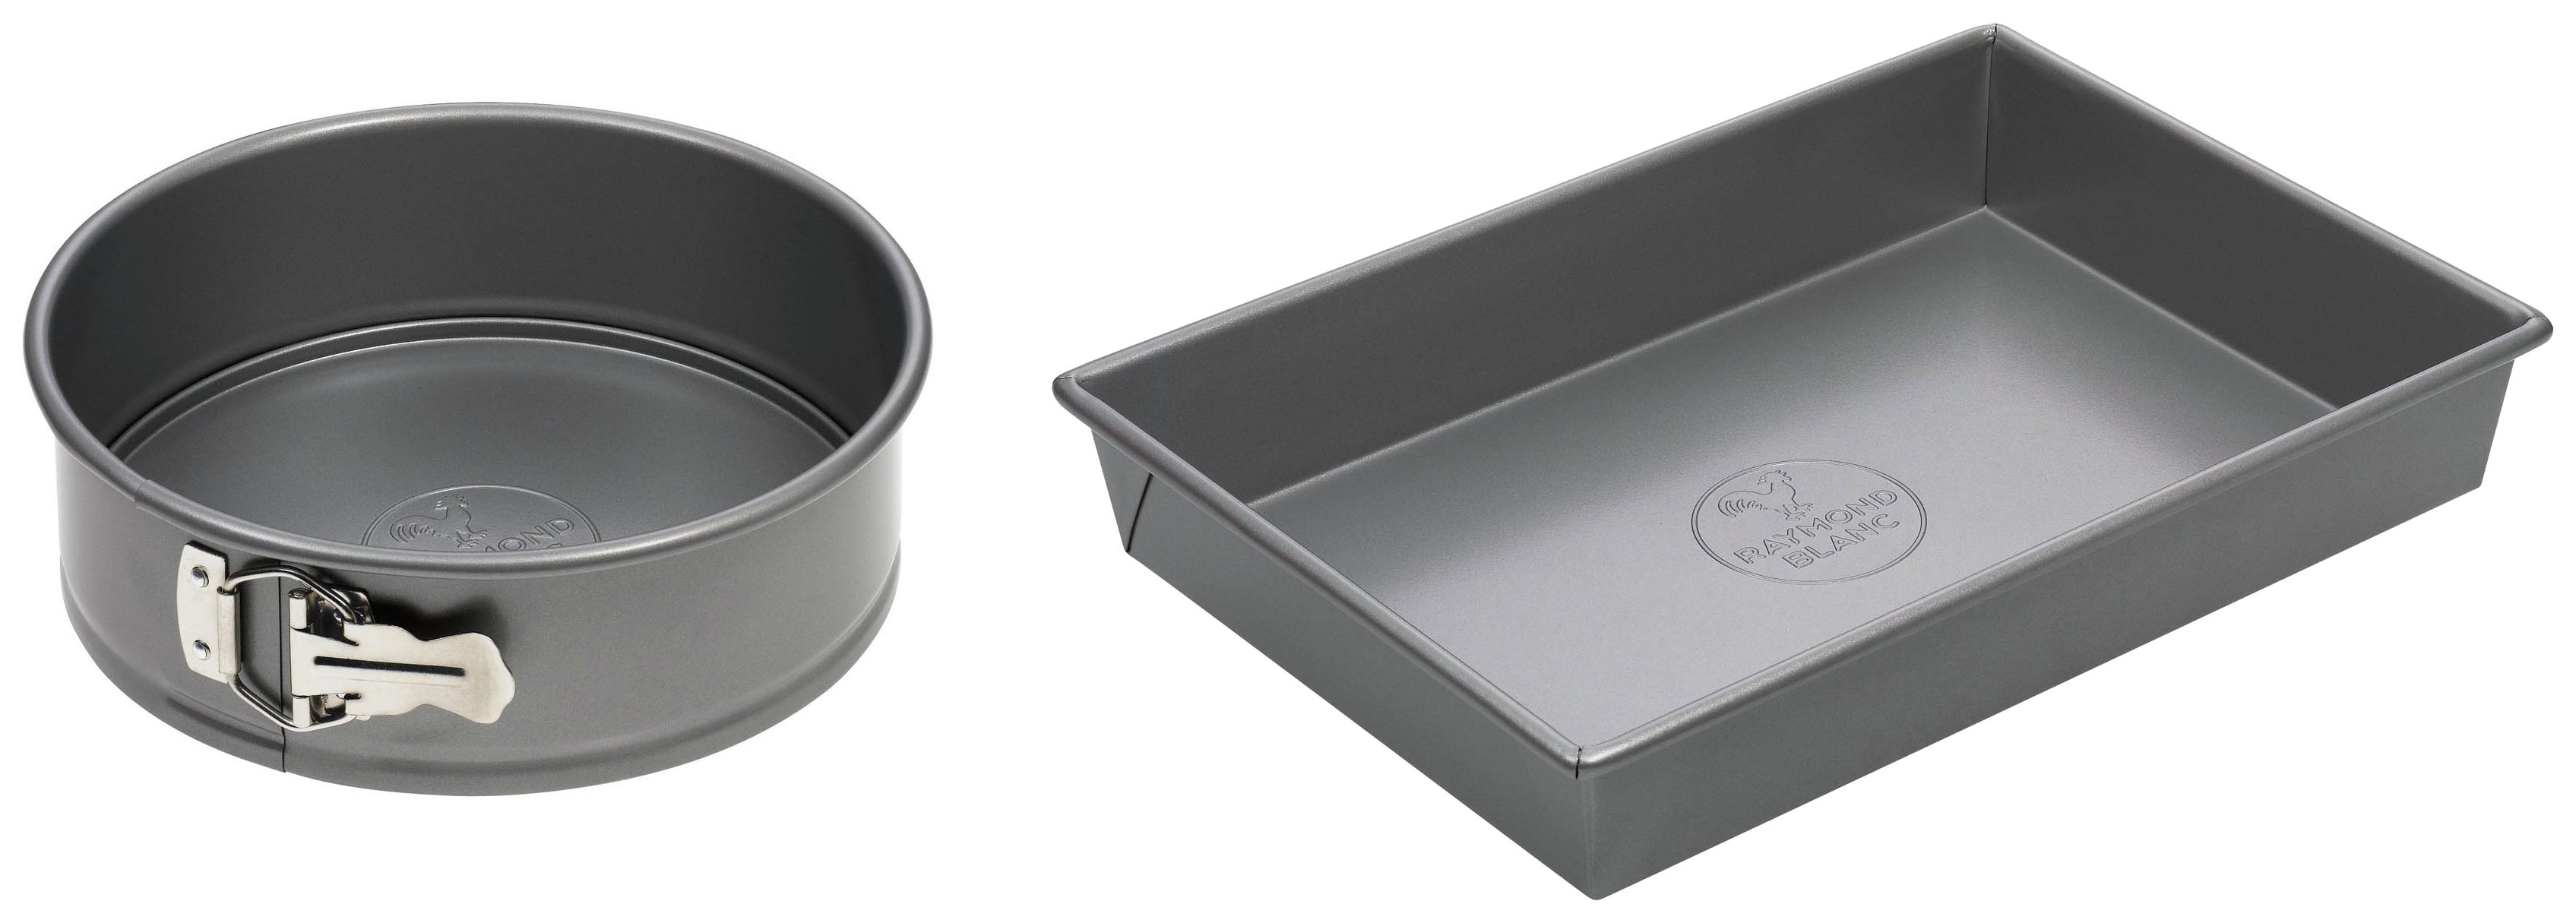 raymond-blanc-set-of-2-bakeware-tins